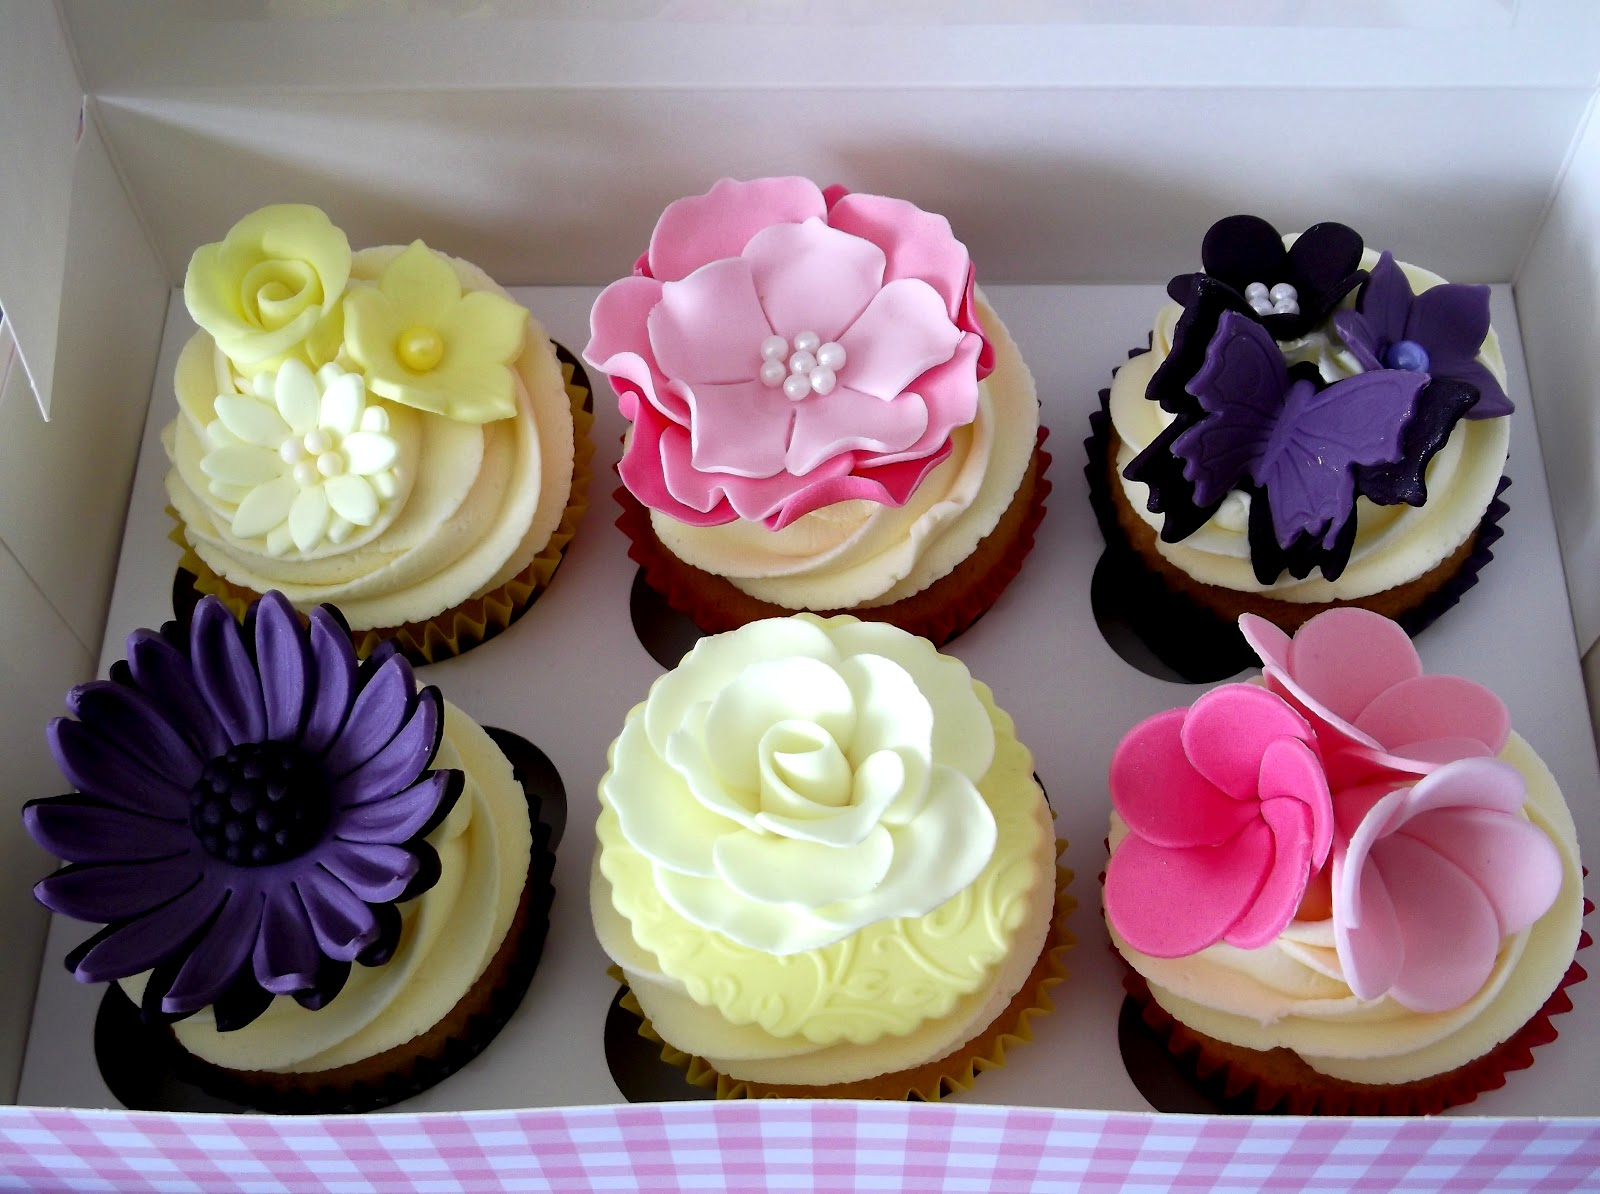 Homemade Cakes By Sue Hitchin